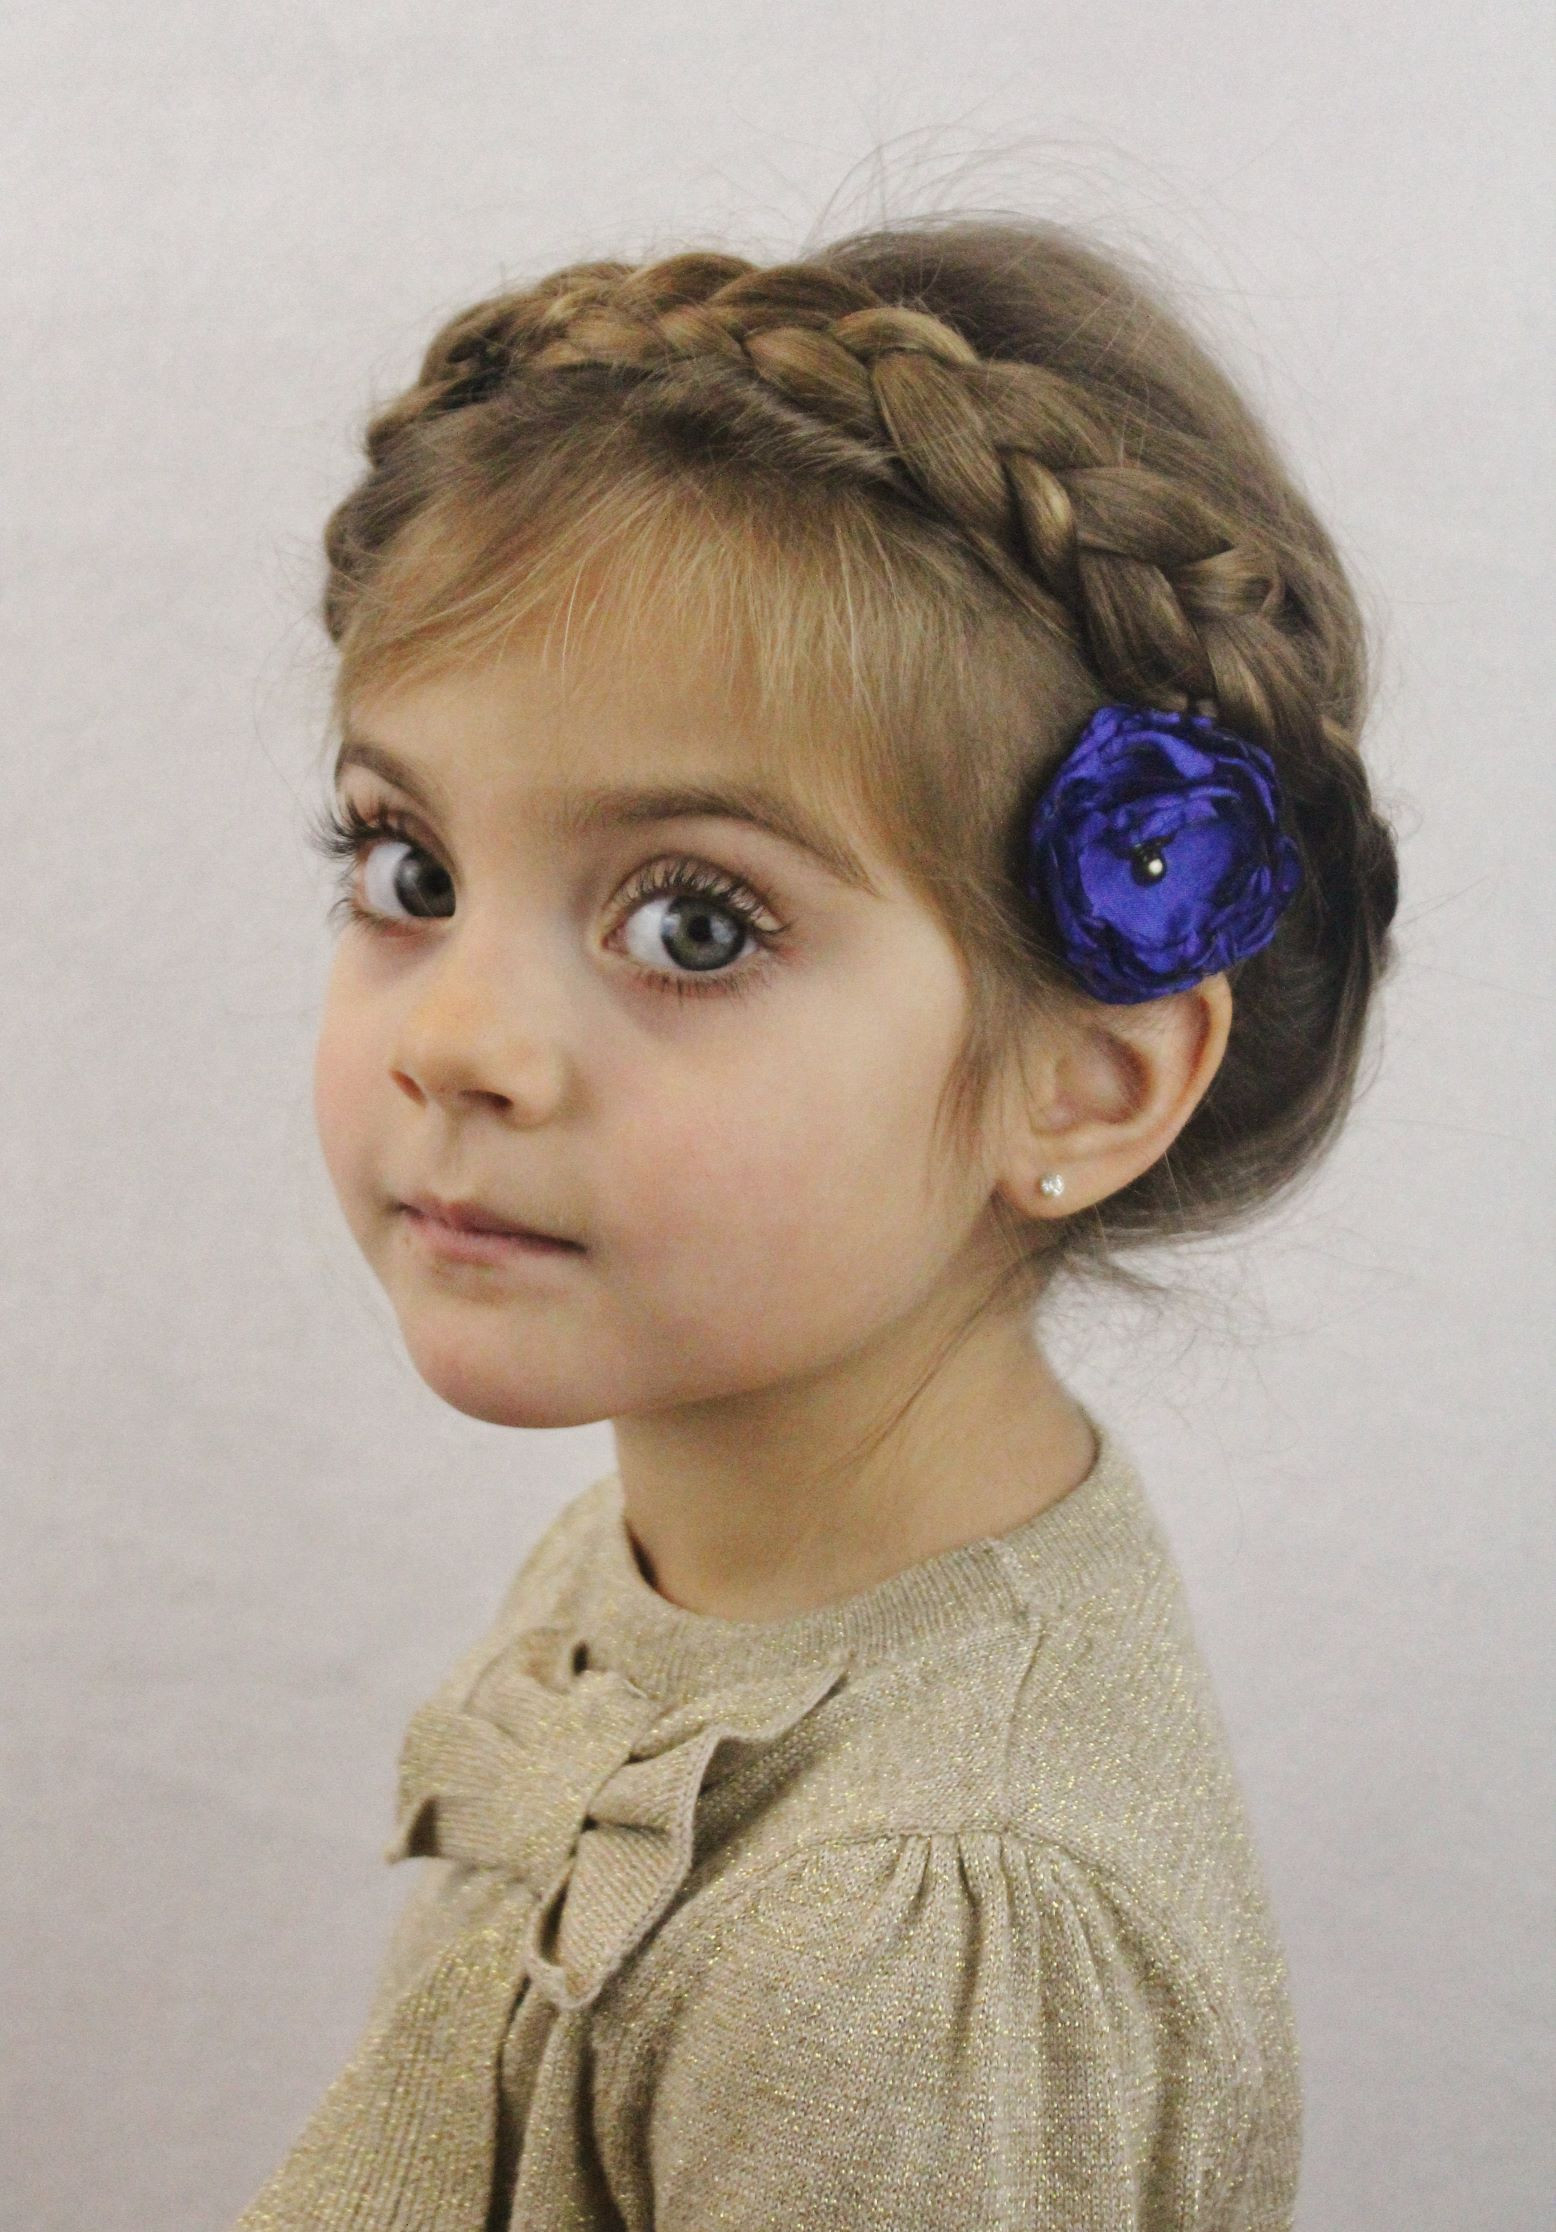 Best ideas about Hair Cut For Kids . Save or Pin Cute Christmas Party Hairstyles for Kids Now.